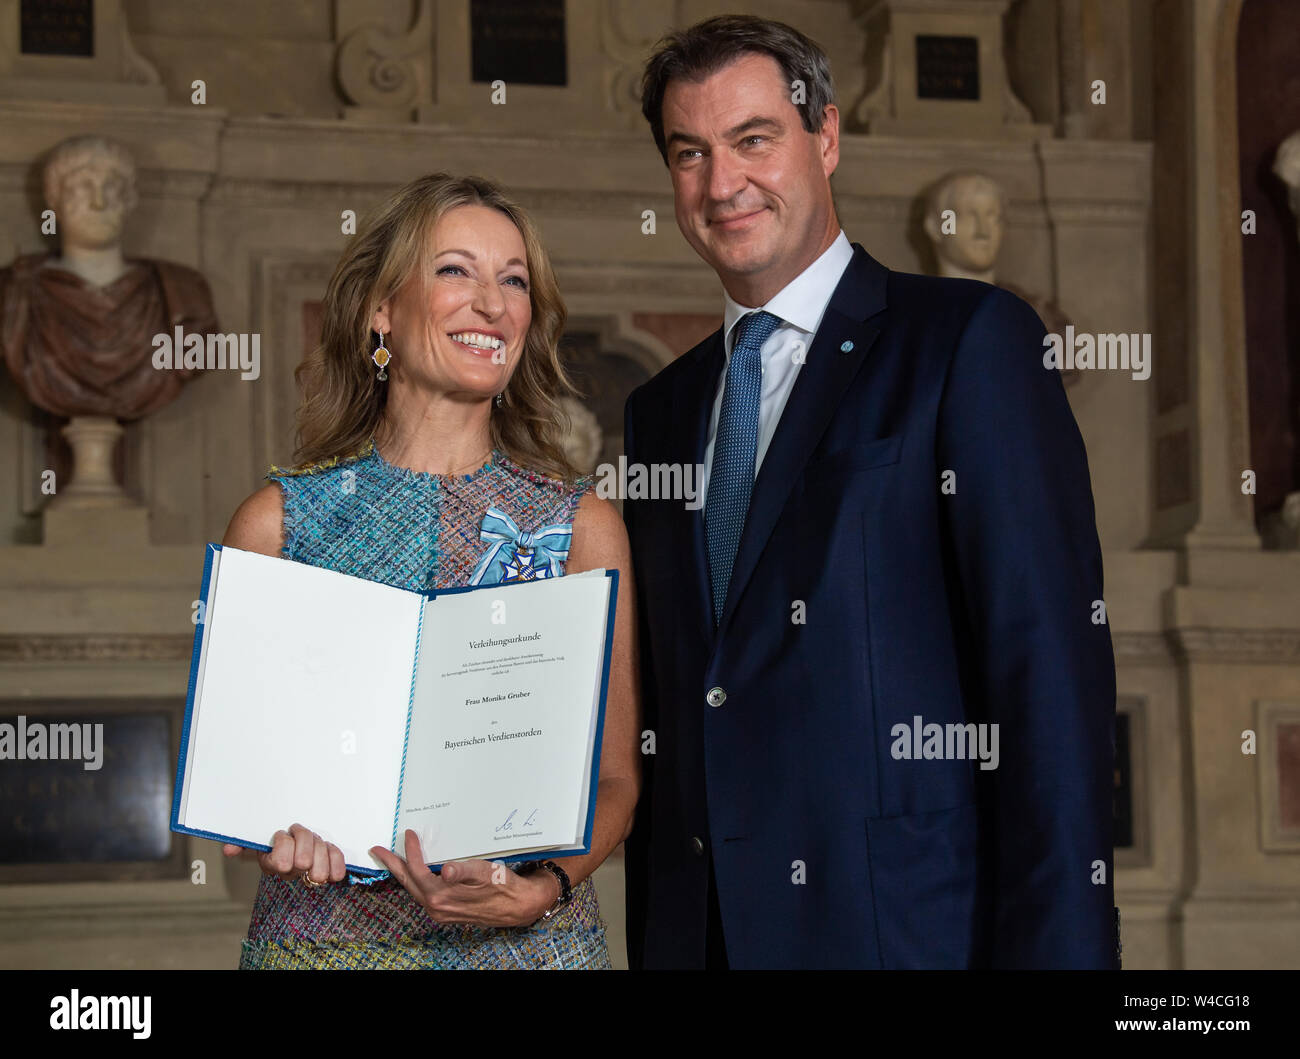 Munich Germany 22nd July 2019 Actress Monika Gruber From Erding Receives The Bavarian Order Of Merit From Markus Soder Csu Prime Minister Of Bavaria Credit Peter Kneffel Dpa Alamy Live News Stock Photo